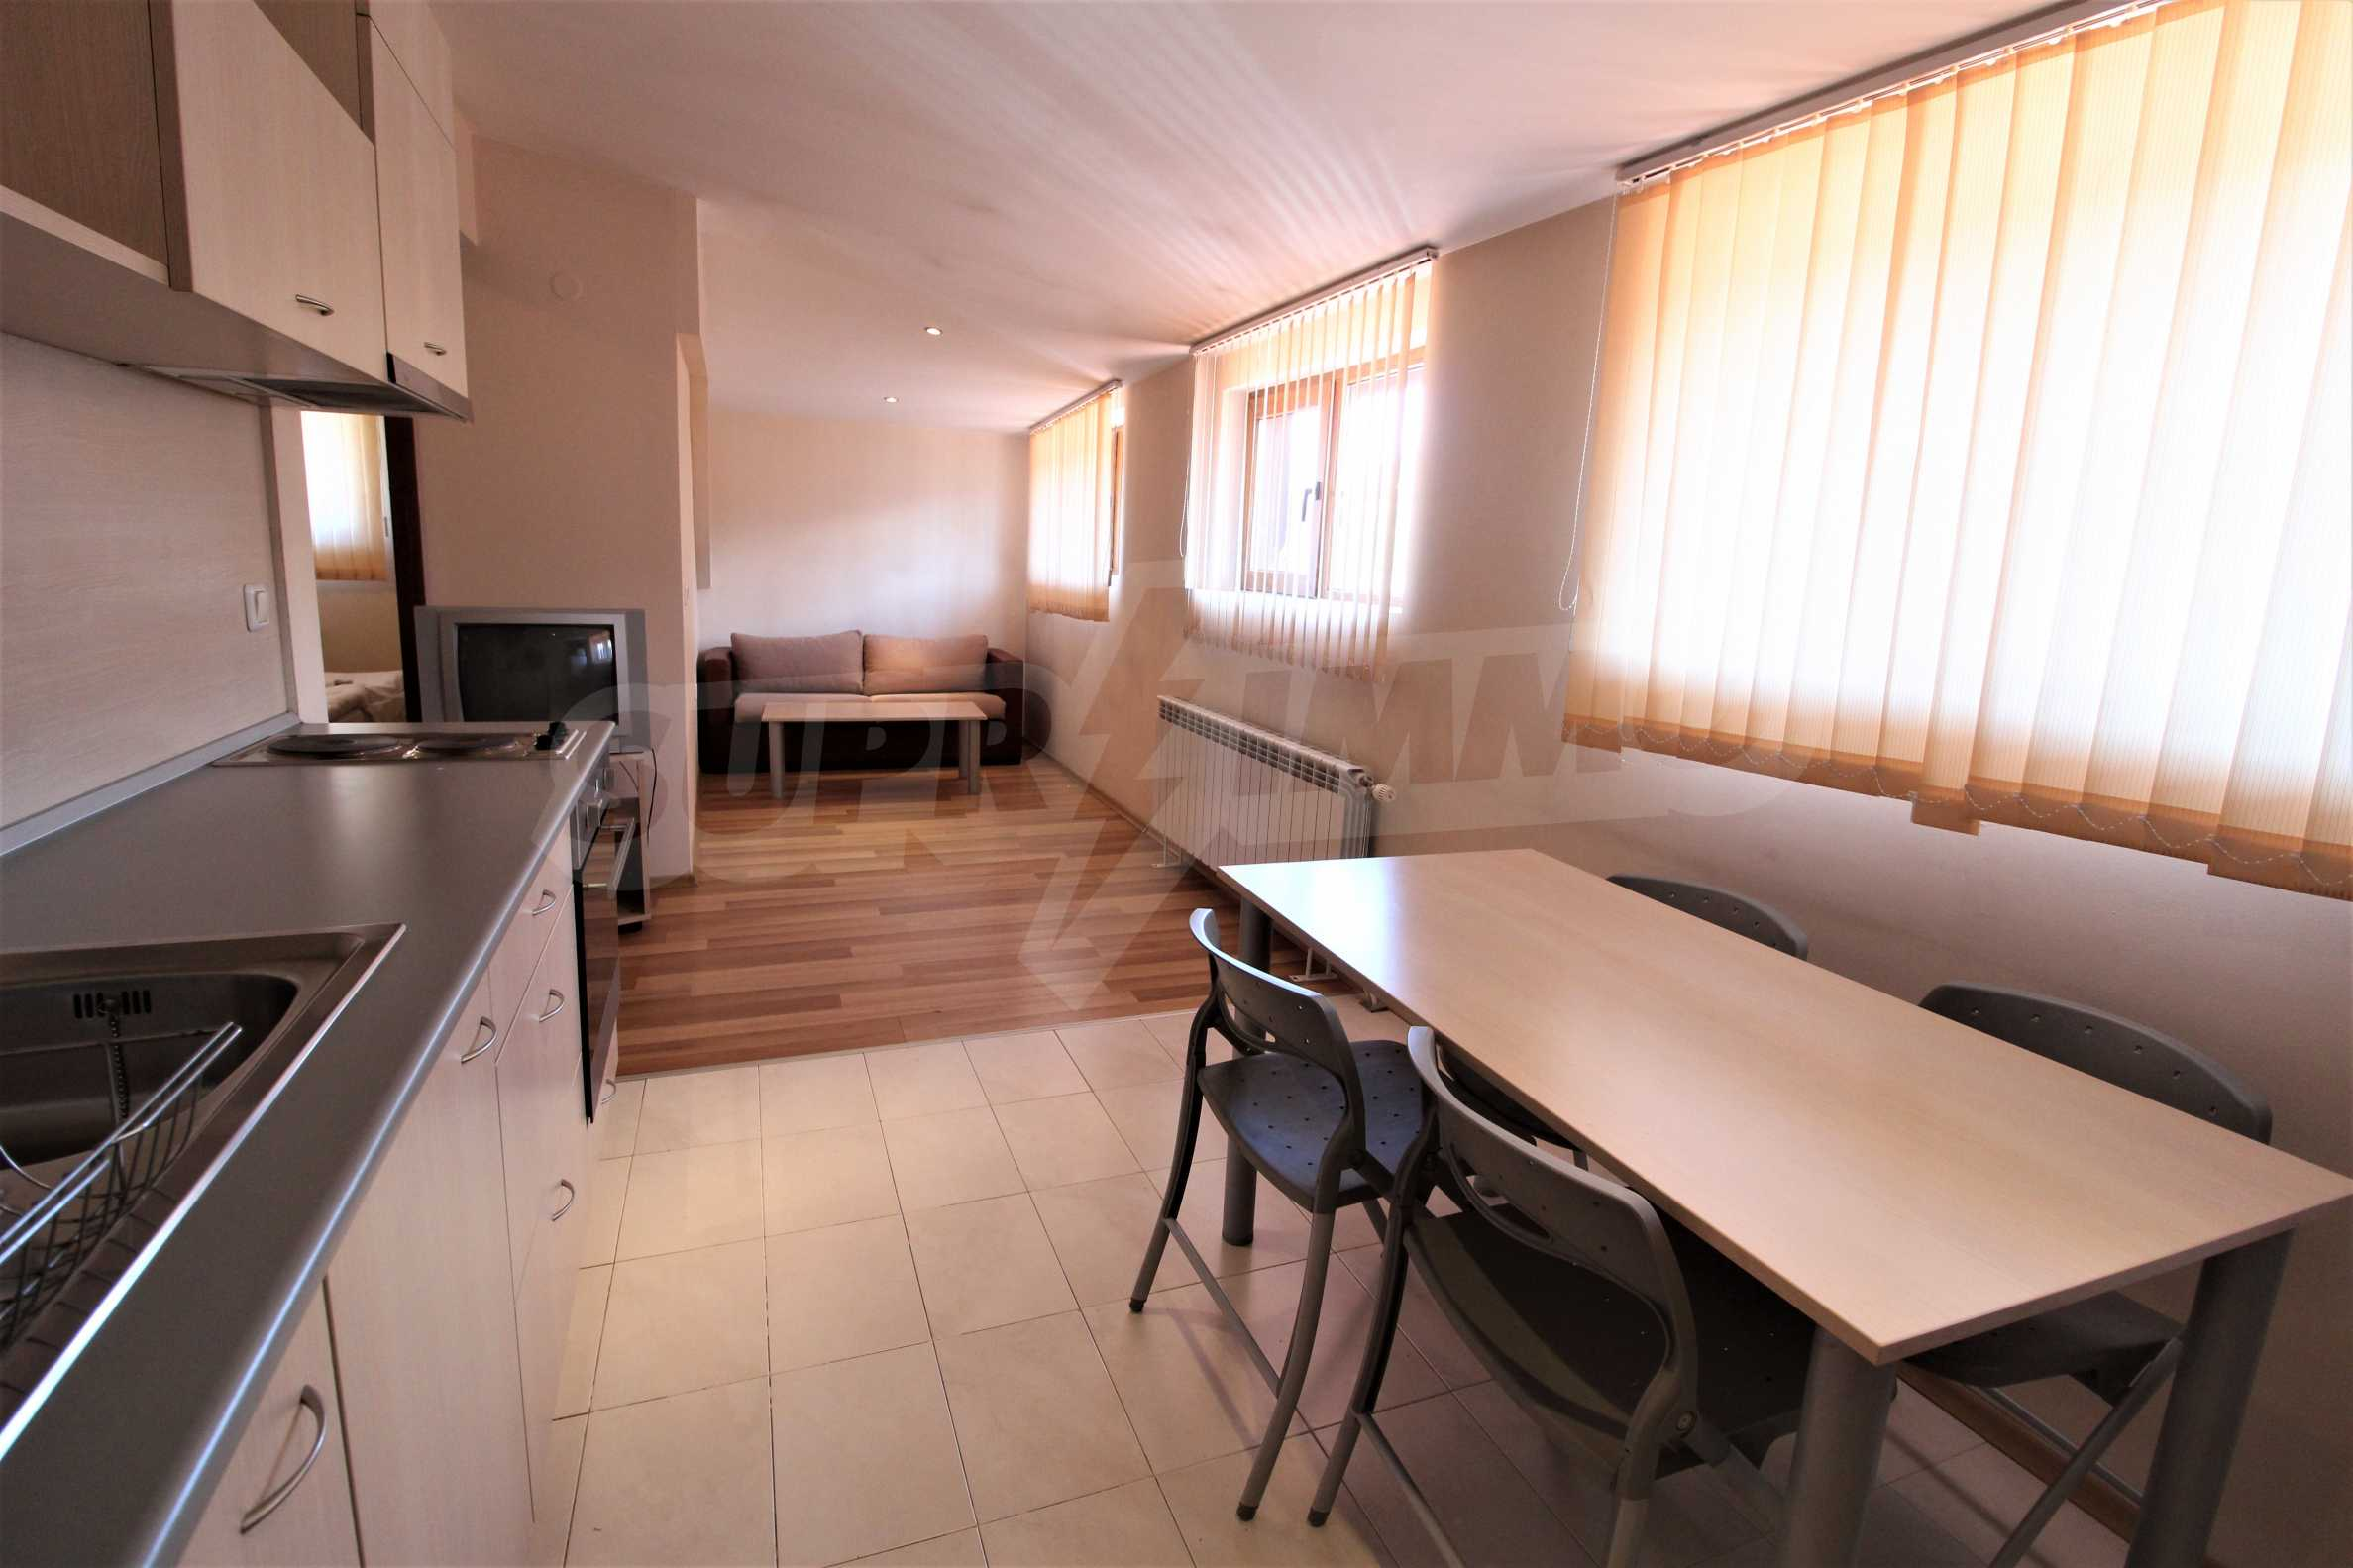 Fully furnished one-bedroom apartment in Snow Plough in Bansko